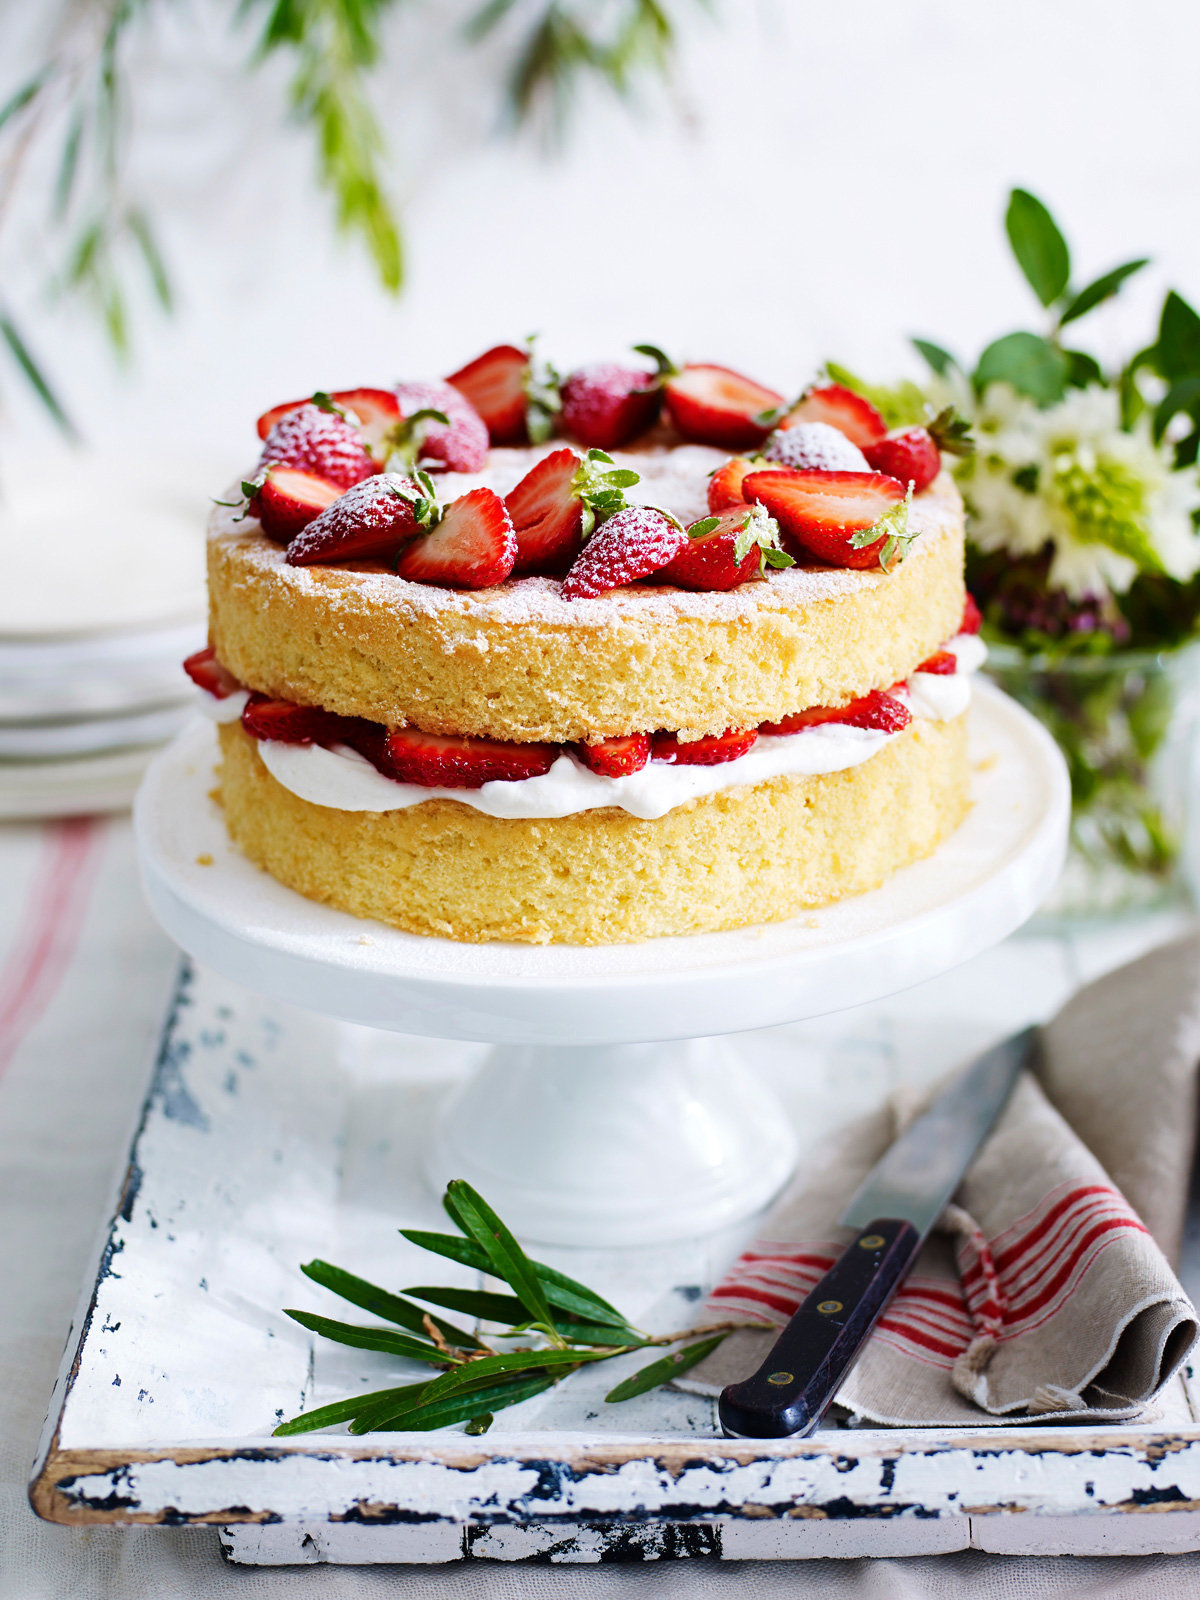 Andy-Lewis©Food-photographer_Food-Photography_Weight-Watchers_Lime&Strawberry-Sponge-Cake.jpg